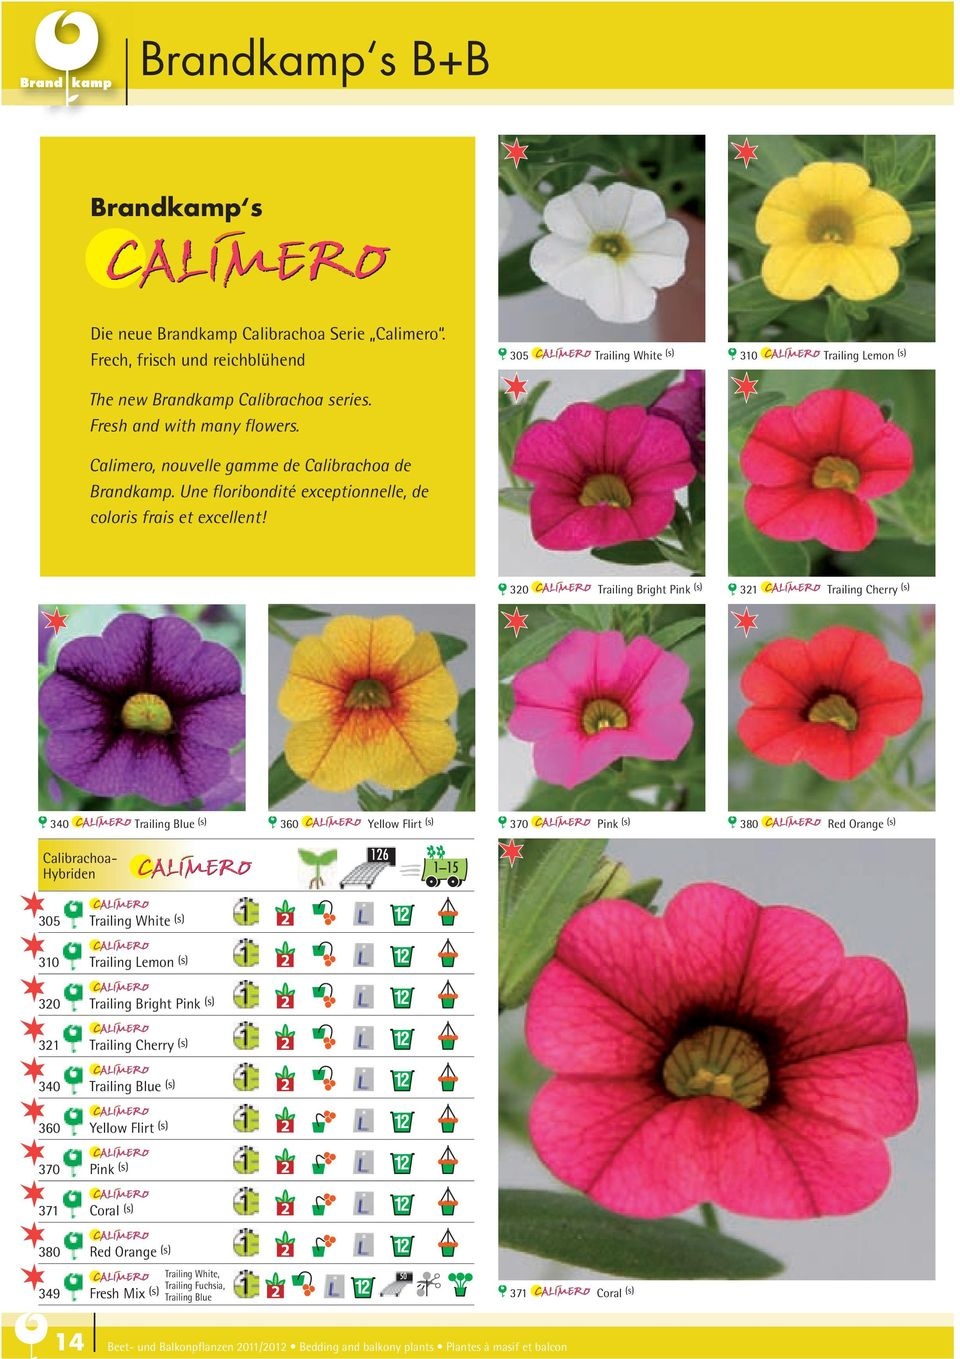 305 Trailing White (s) 310 Trailing Lemon (s) 320 Trailing Bright Pink (s) 321 Trailing Cherry (s) 340 Trailing Blue (s) 360 Yellow Flirt (s) 370 Pink (s) 380 Red Orange (s) Calibrachoa- Hybriden 126